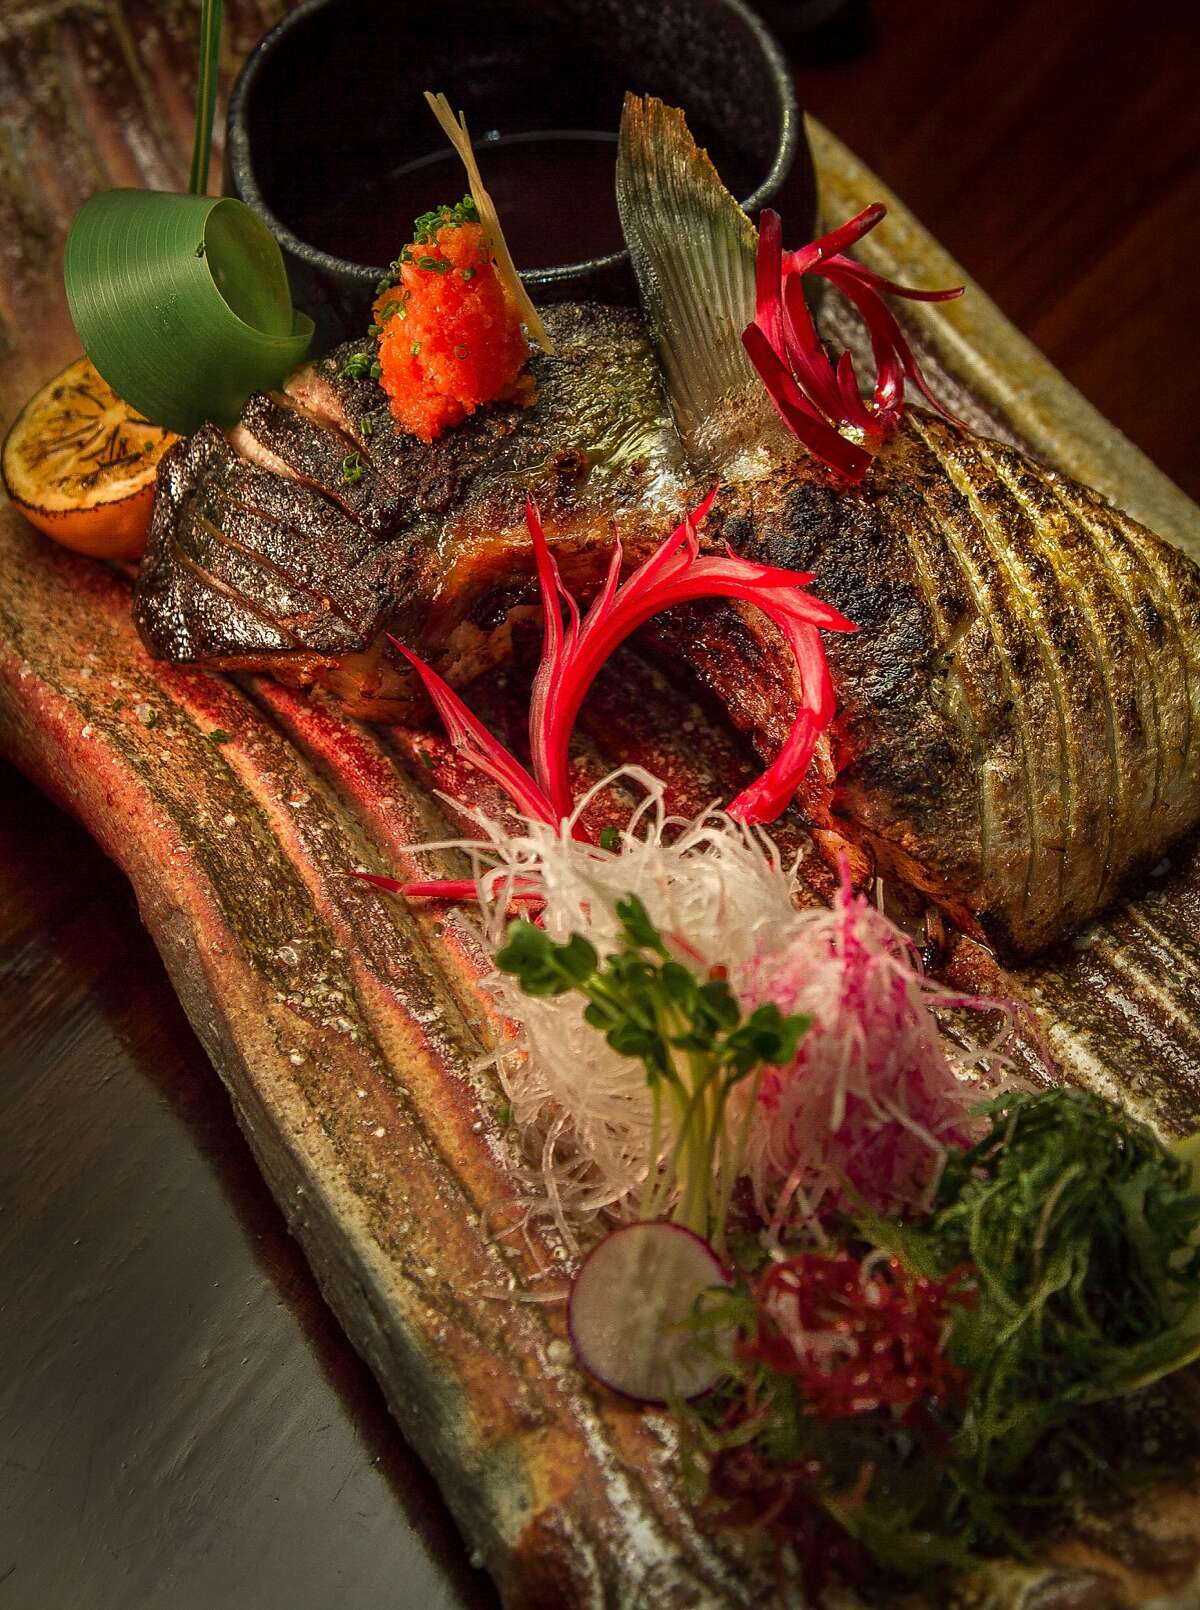 The Hamachi Collar at Iyasare restaurant in Berkeley, Calif., is seen on Monday, February 10th, 2014.